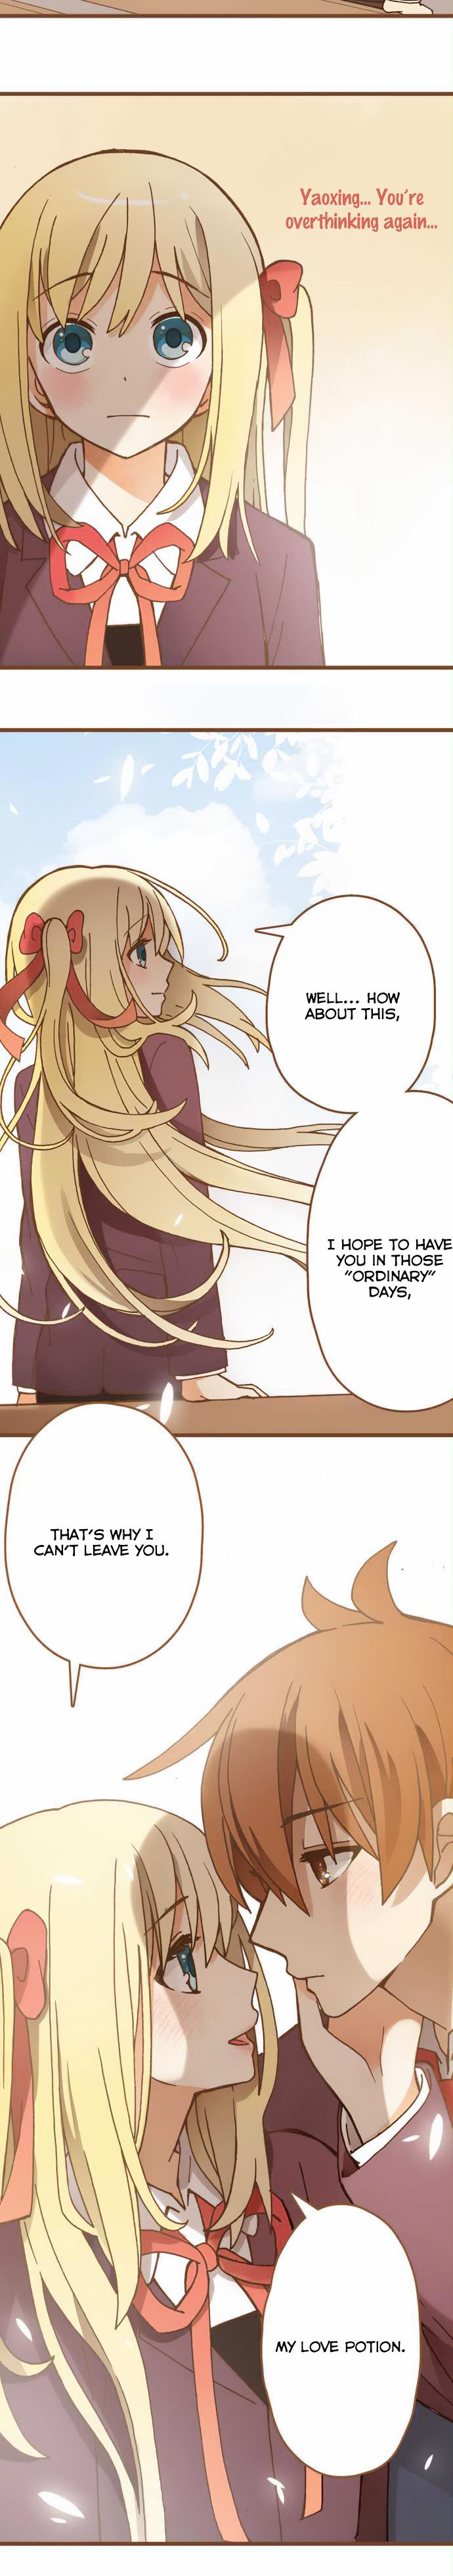 Love Potion Brewing Chapter 50: Unwilling To Let Go page 14 - Mangakakalots.com